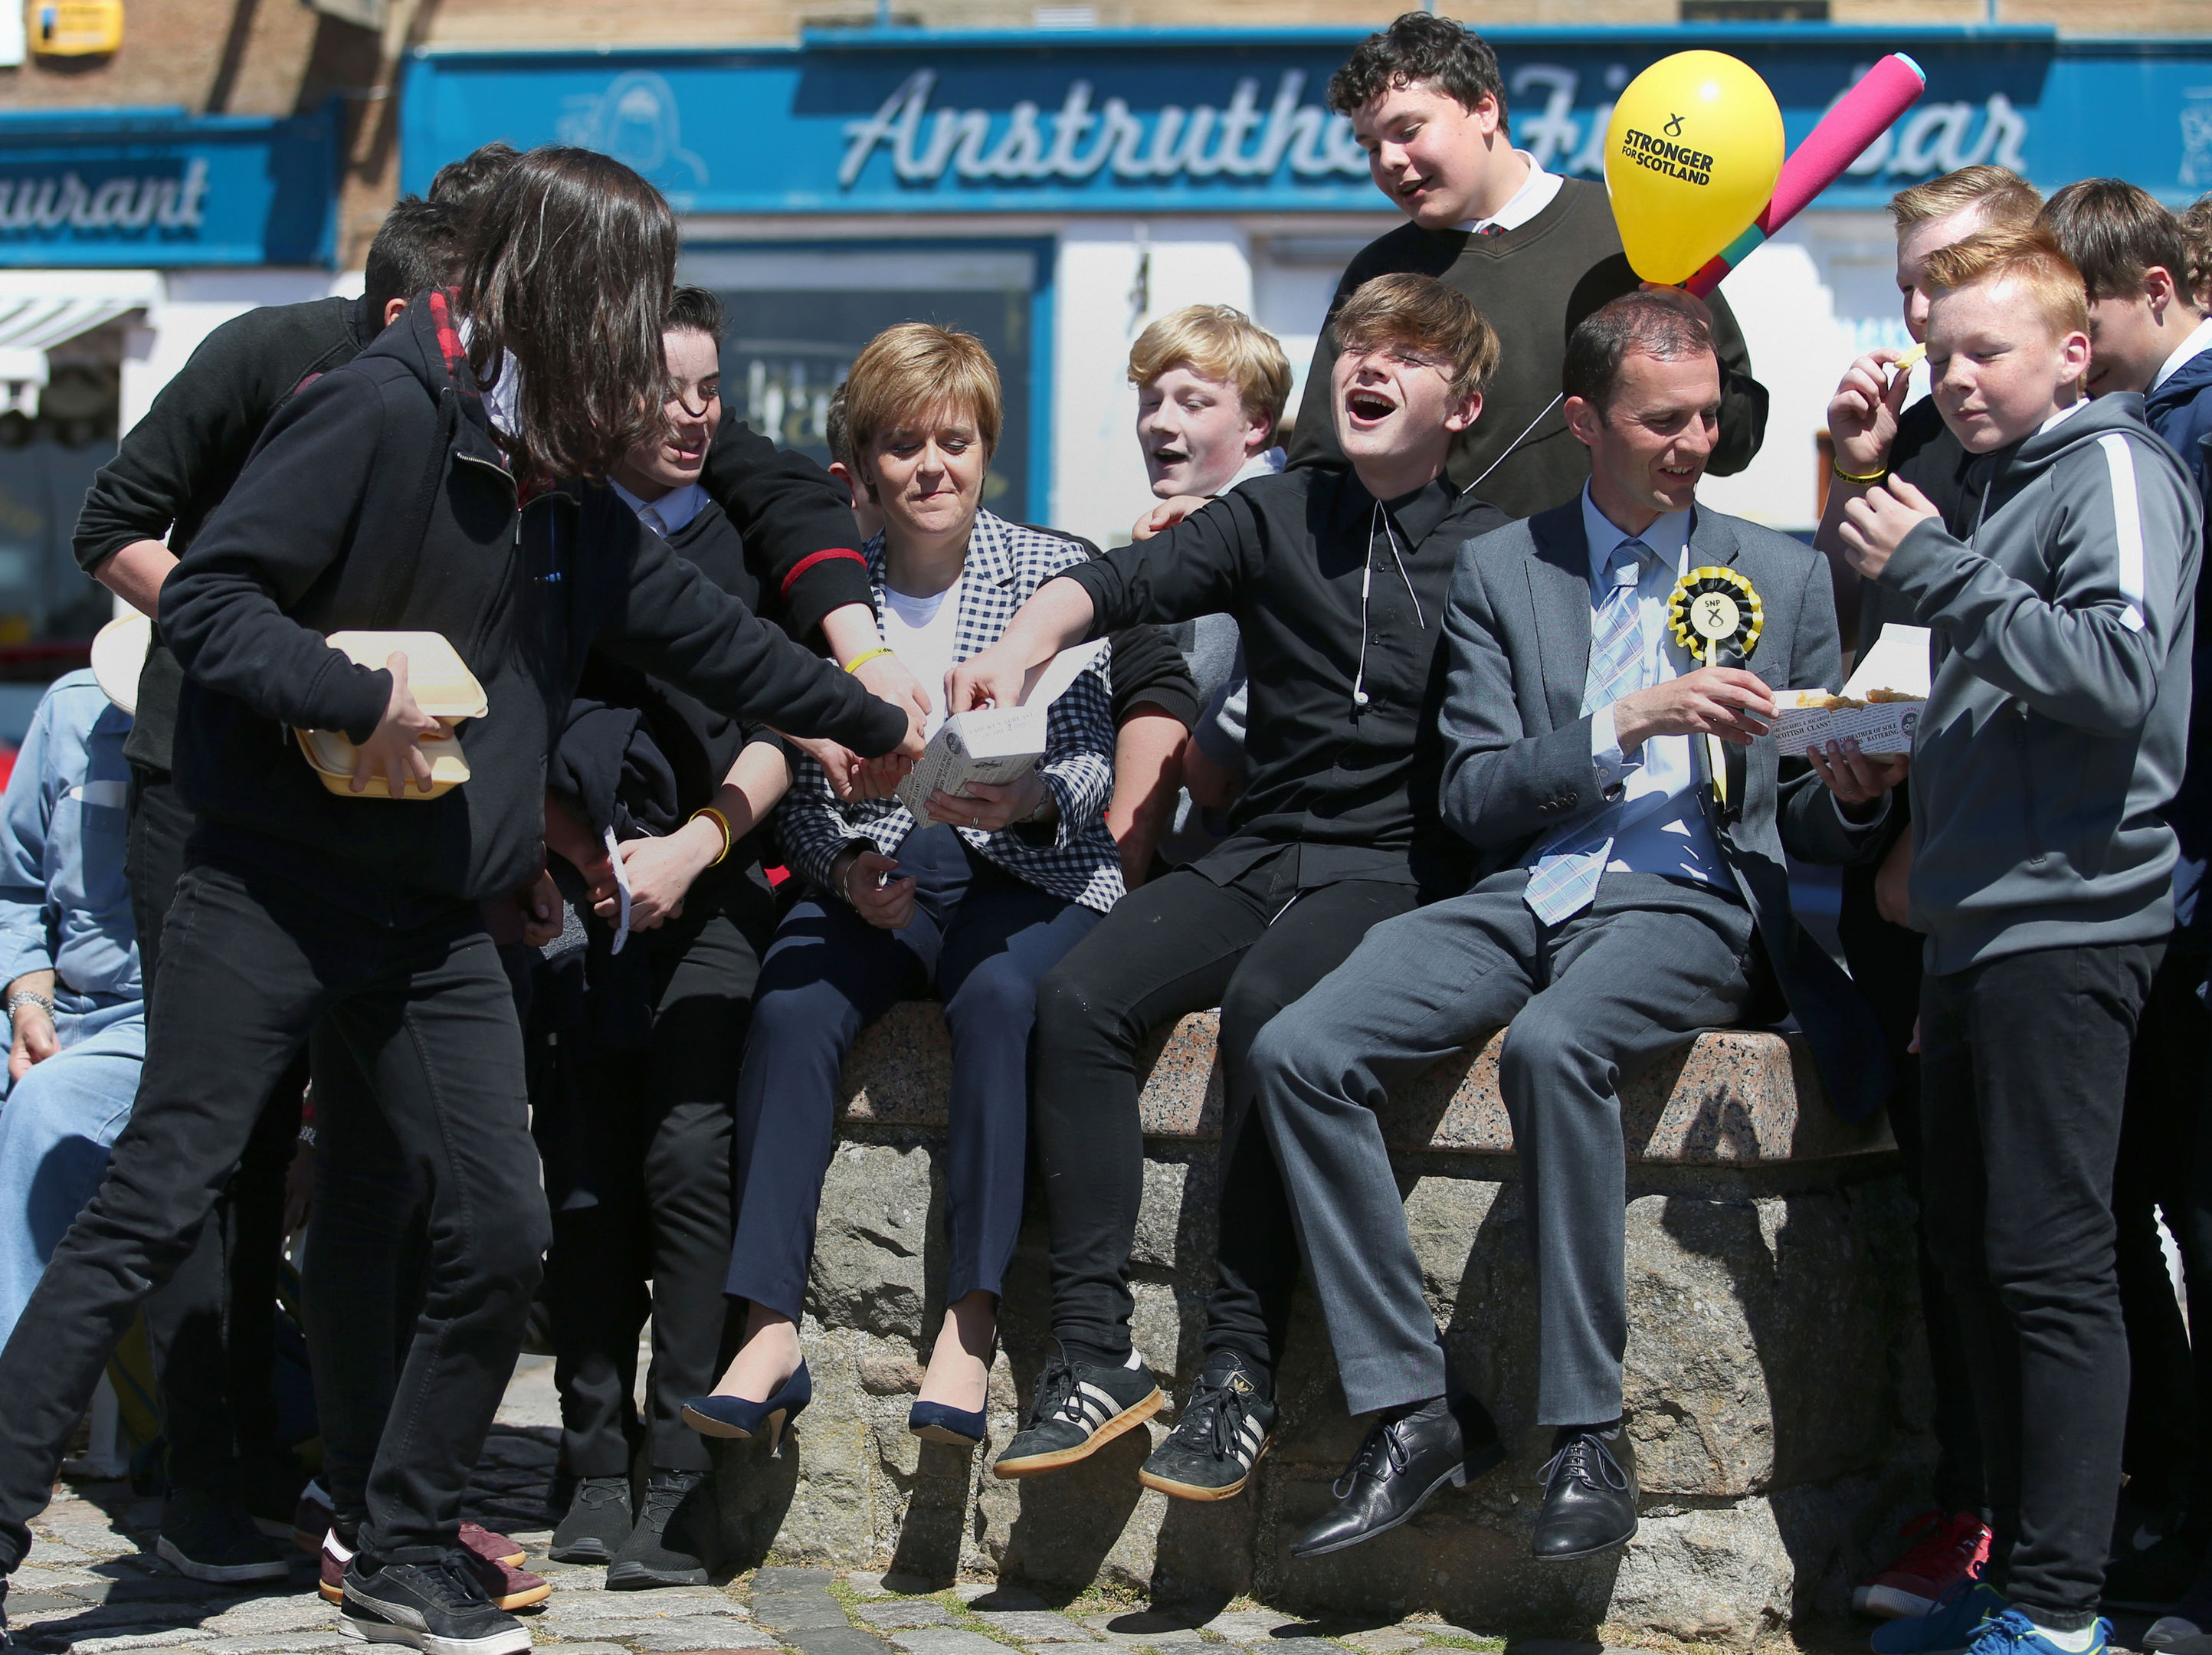 First Minister Nicola Sturgeon and the SNP's local candidate Stephen Gethins share chips with school children during a General Election campaign visit to Anstruther, Fife.